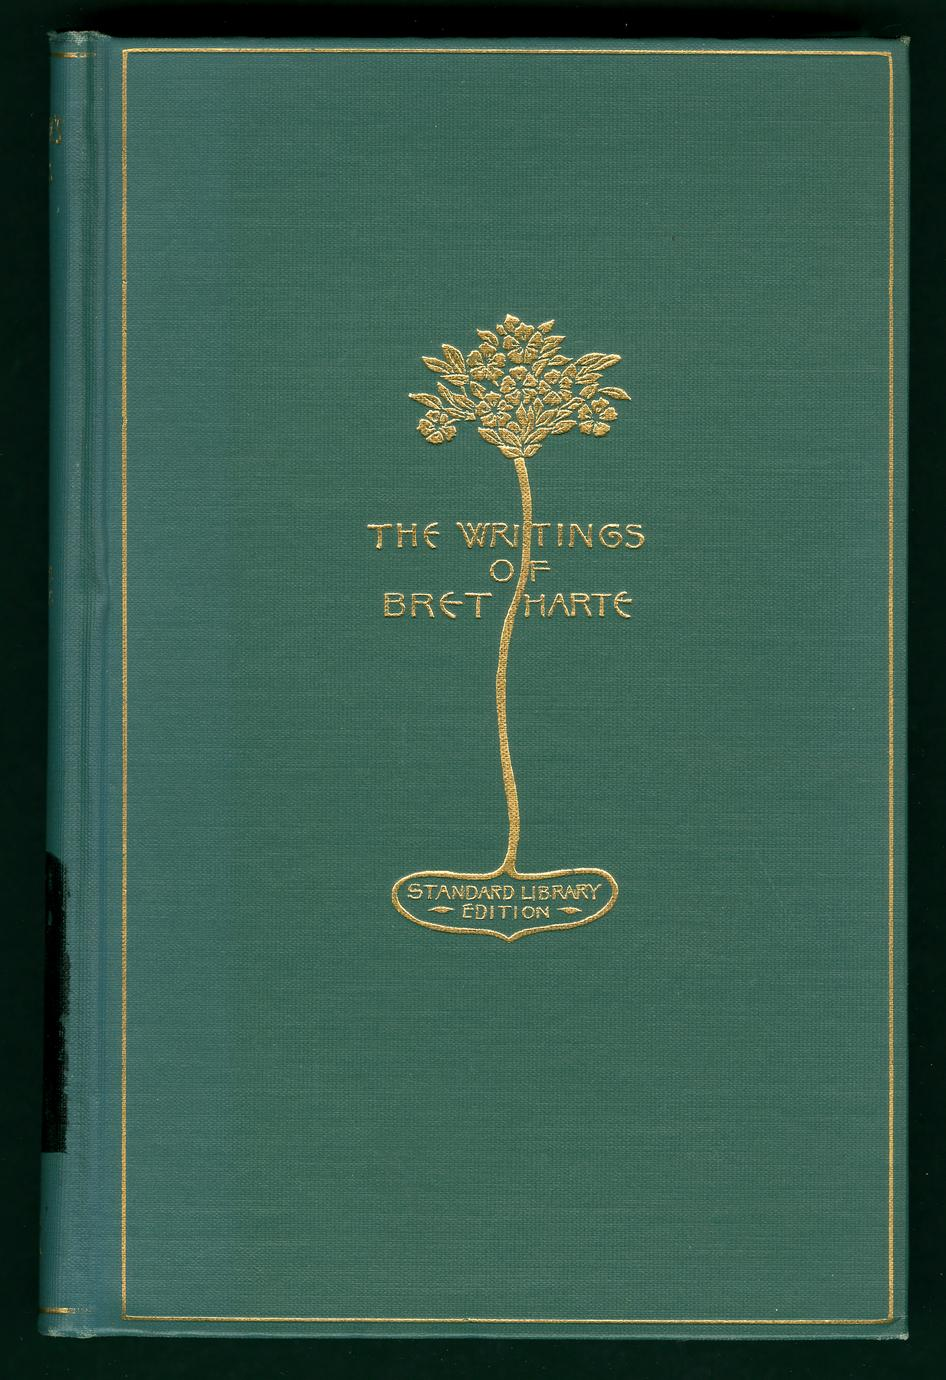 The writings of Bret Harte (1 of 2)